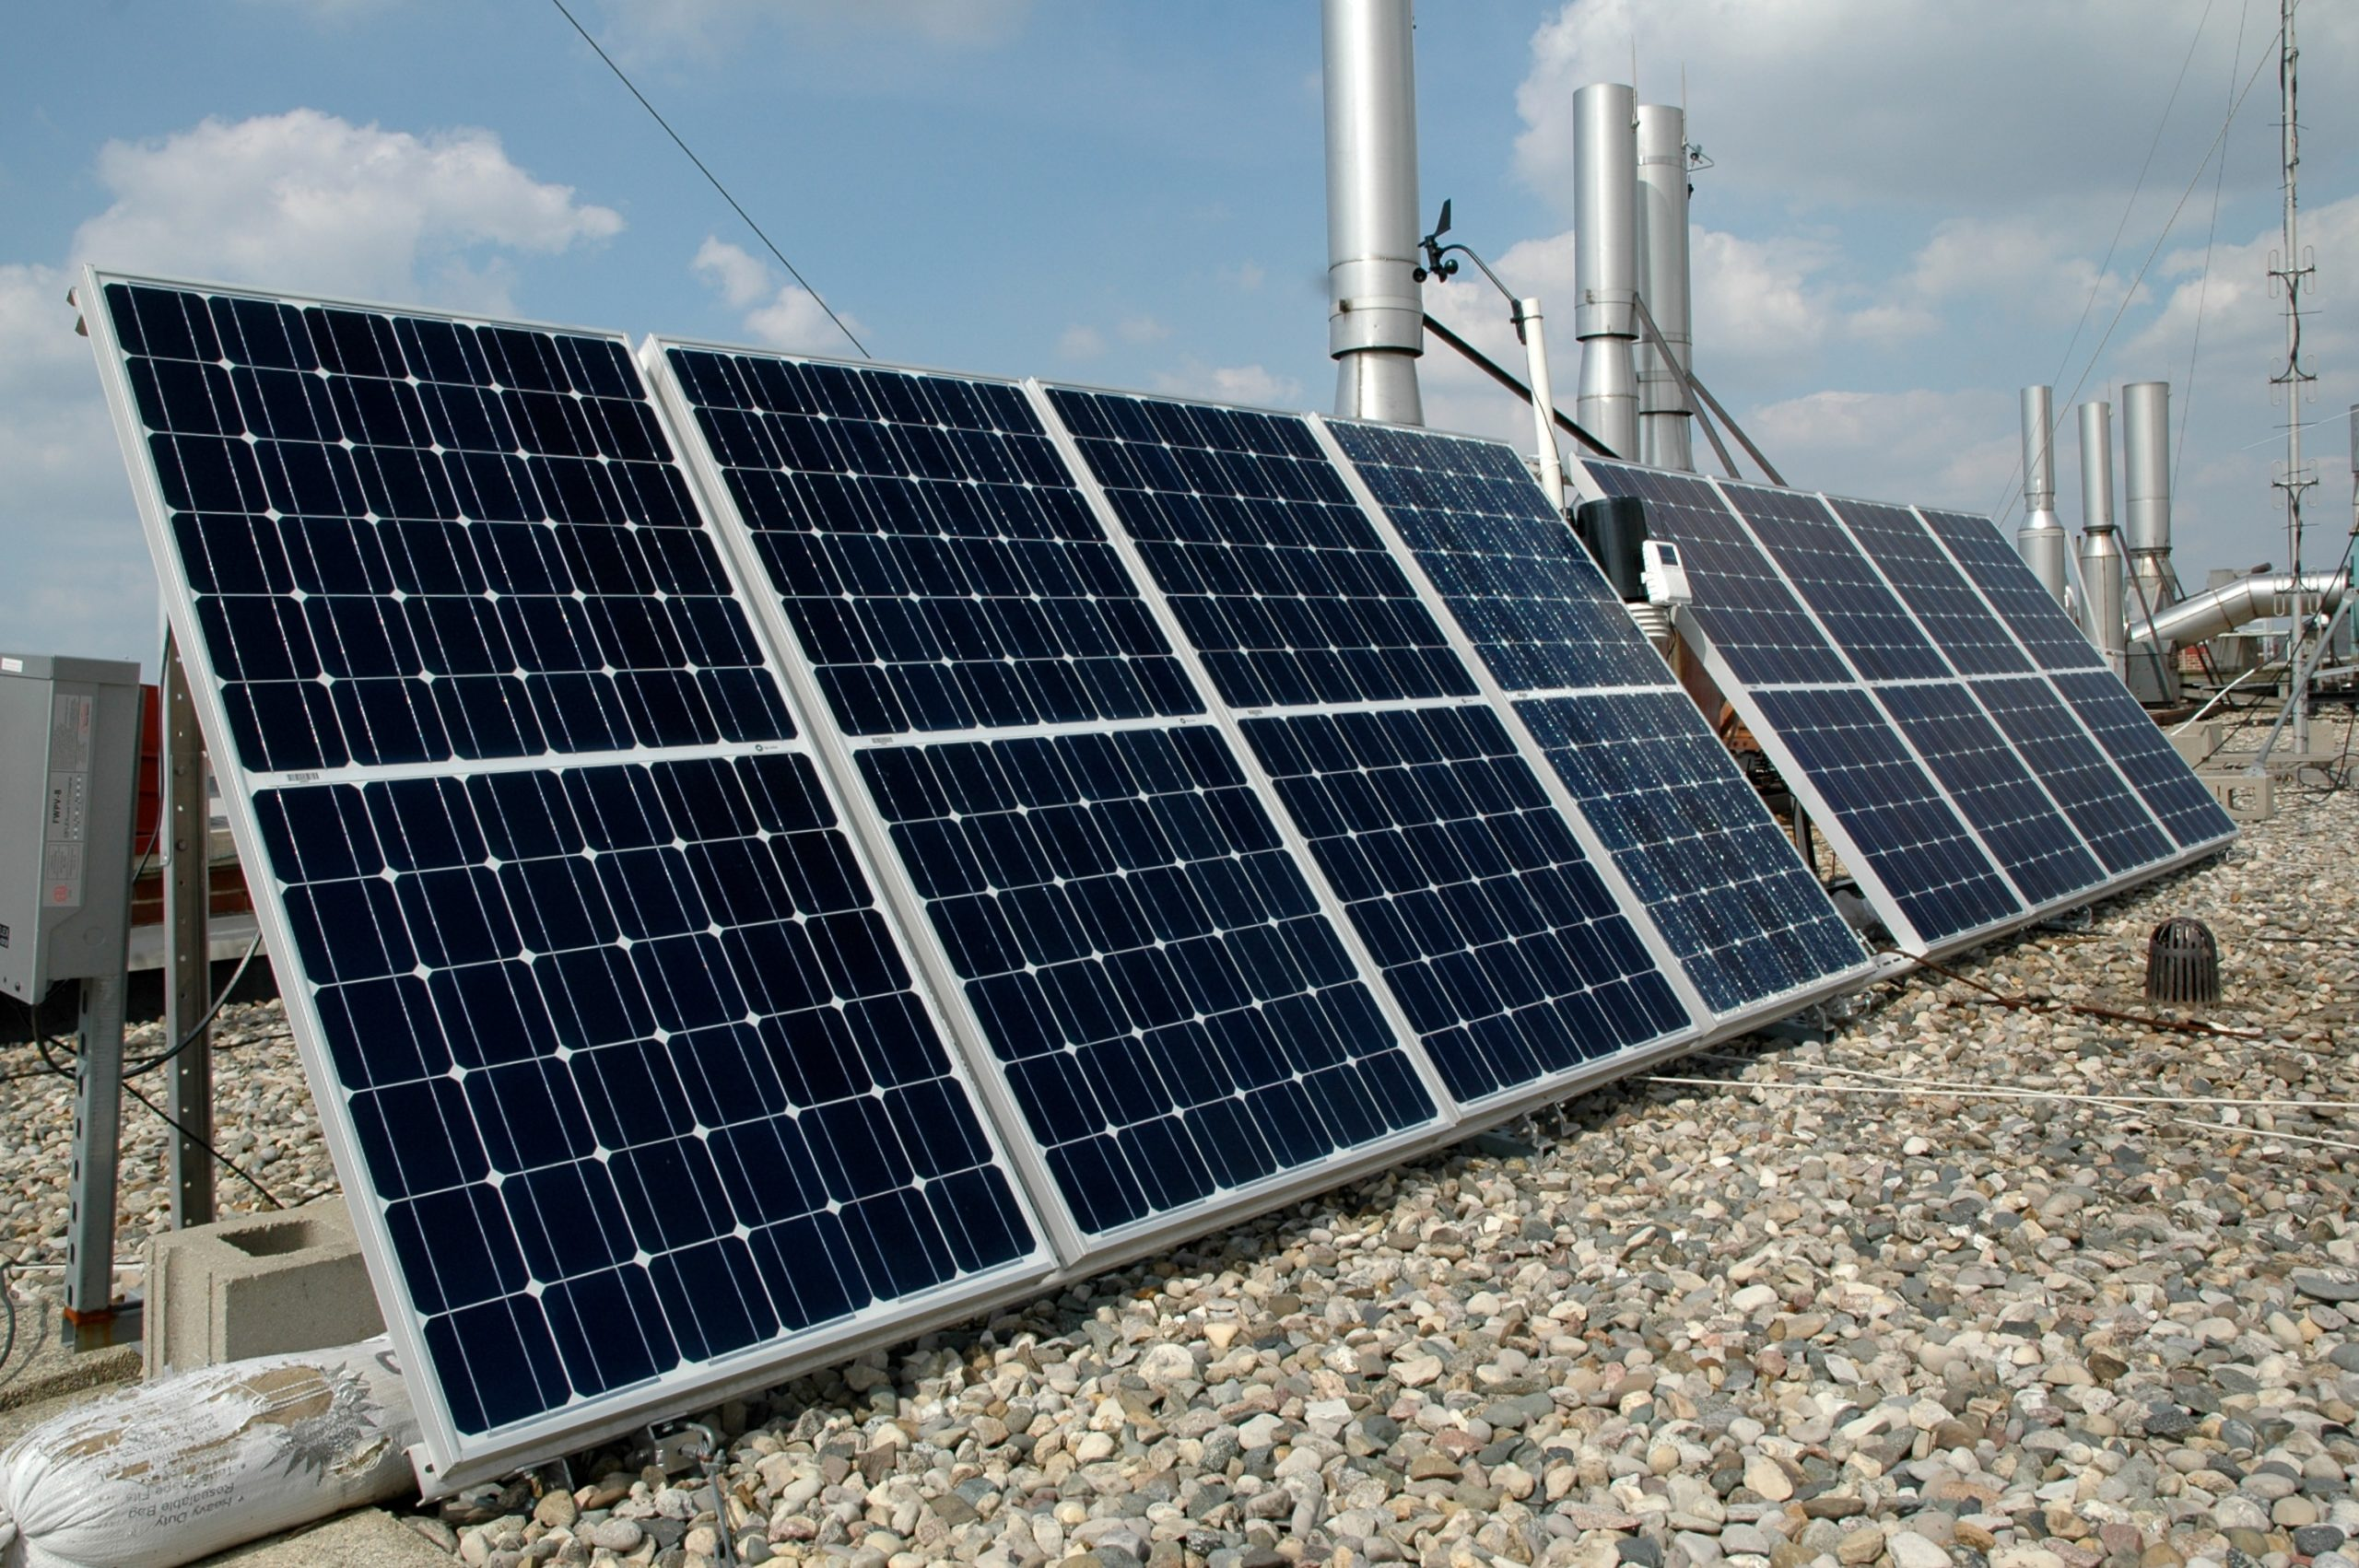 The 1MW community-solar project will generate over 2.1 million kWh per year. Image: stantoncady/Flickr